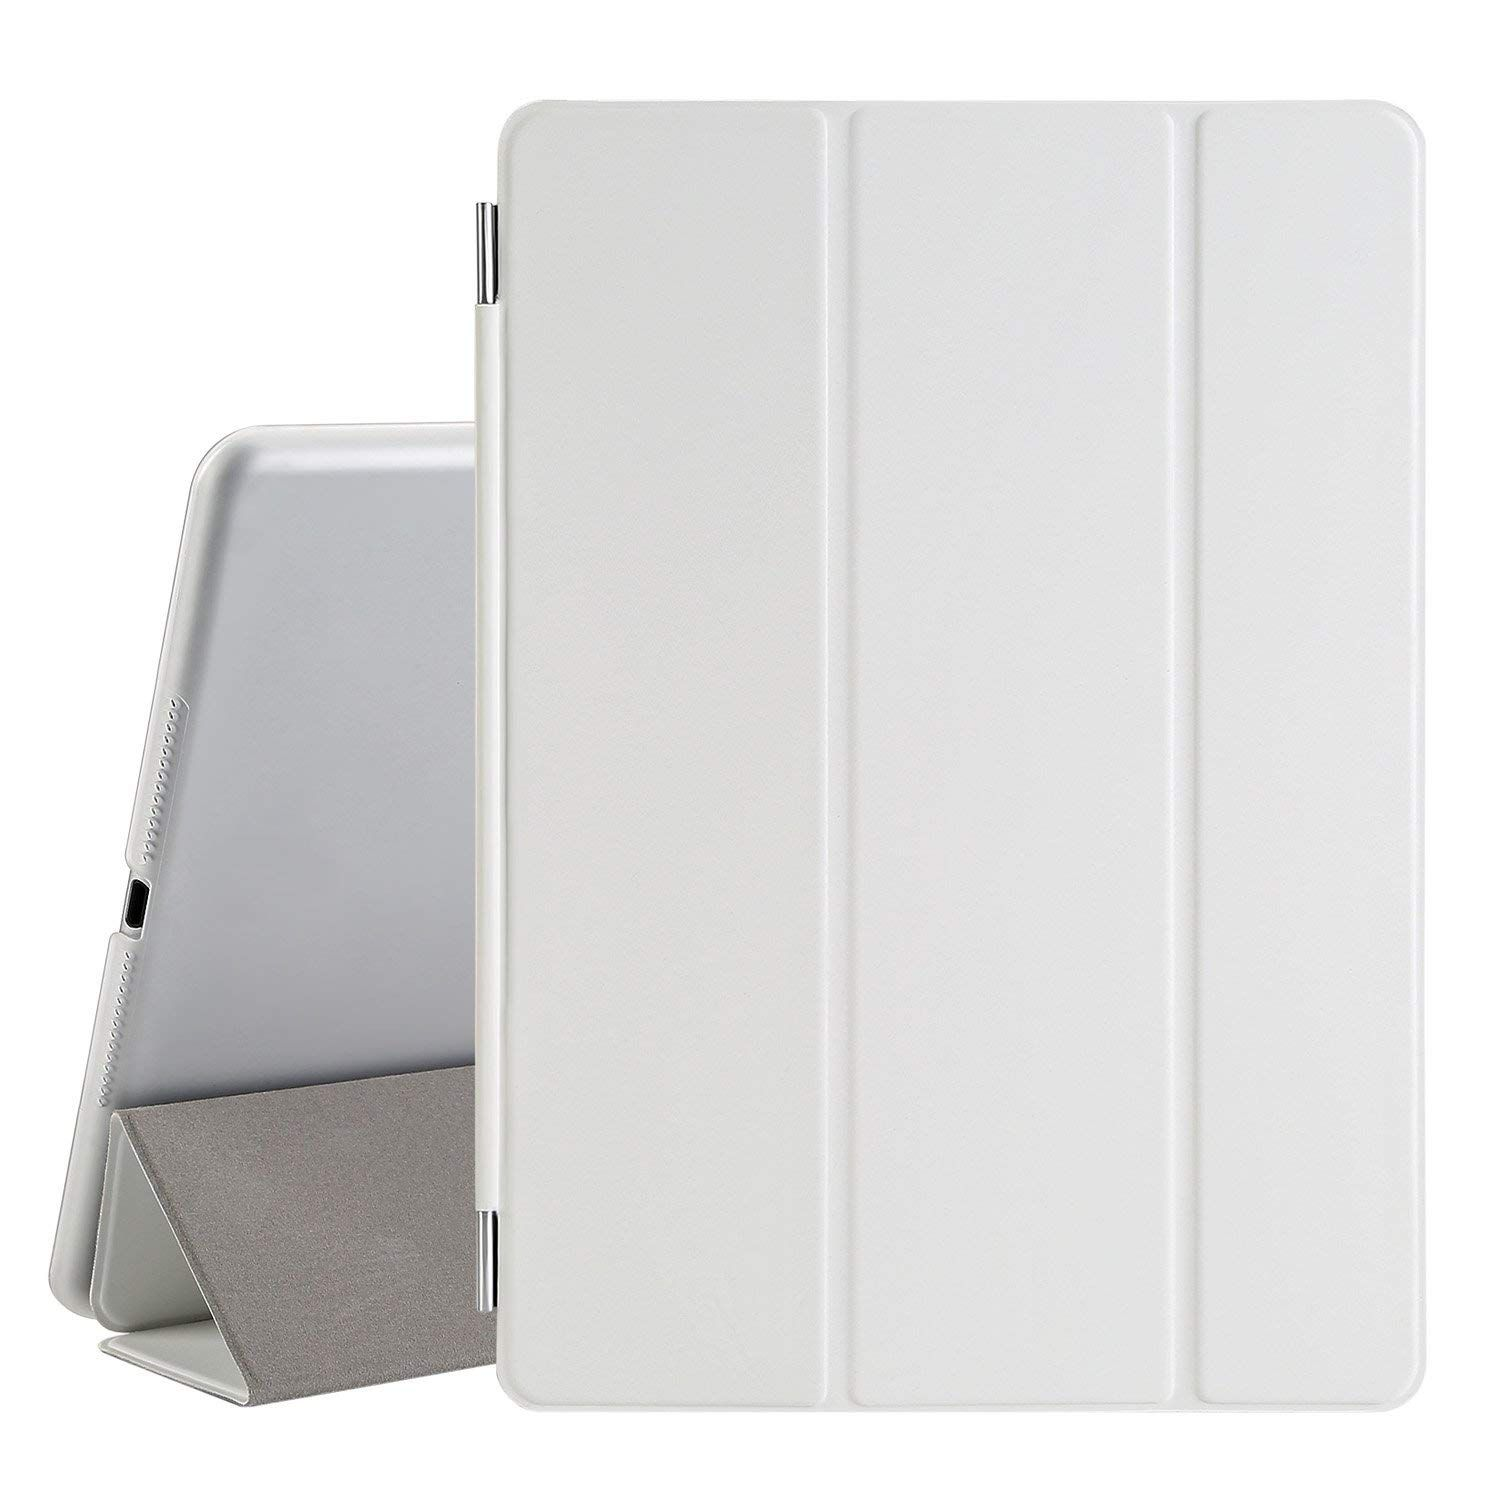 Capa Smart Case Ipad Air 2 Sensor Sleep Frontal + Traseira